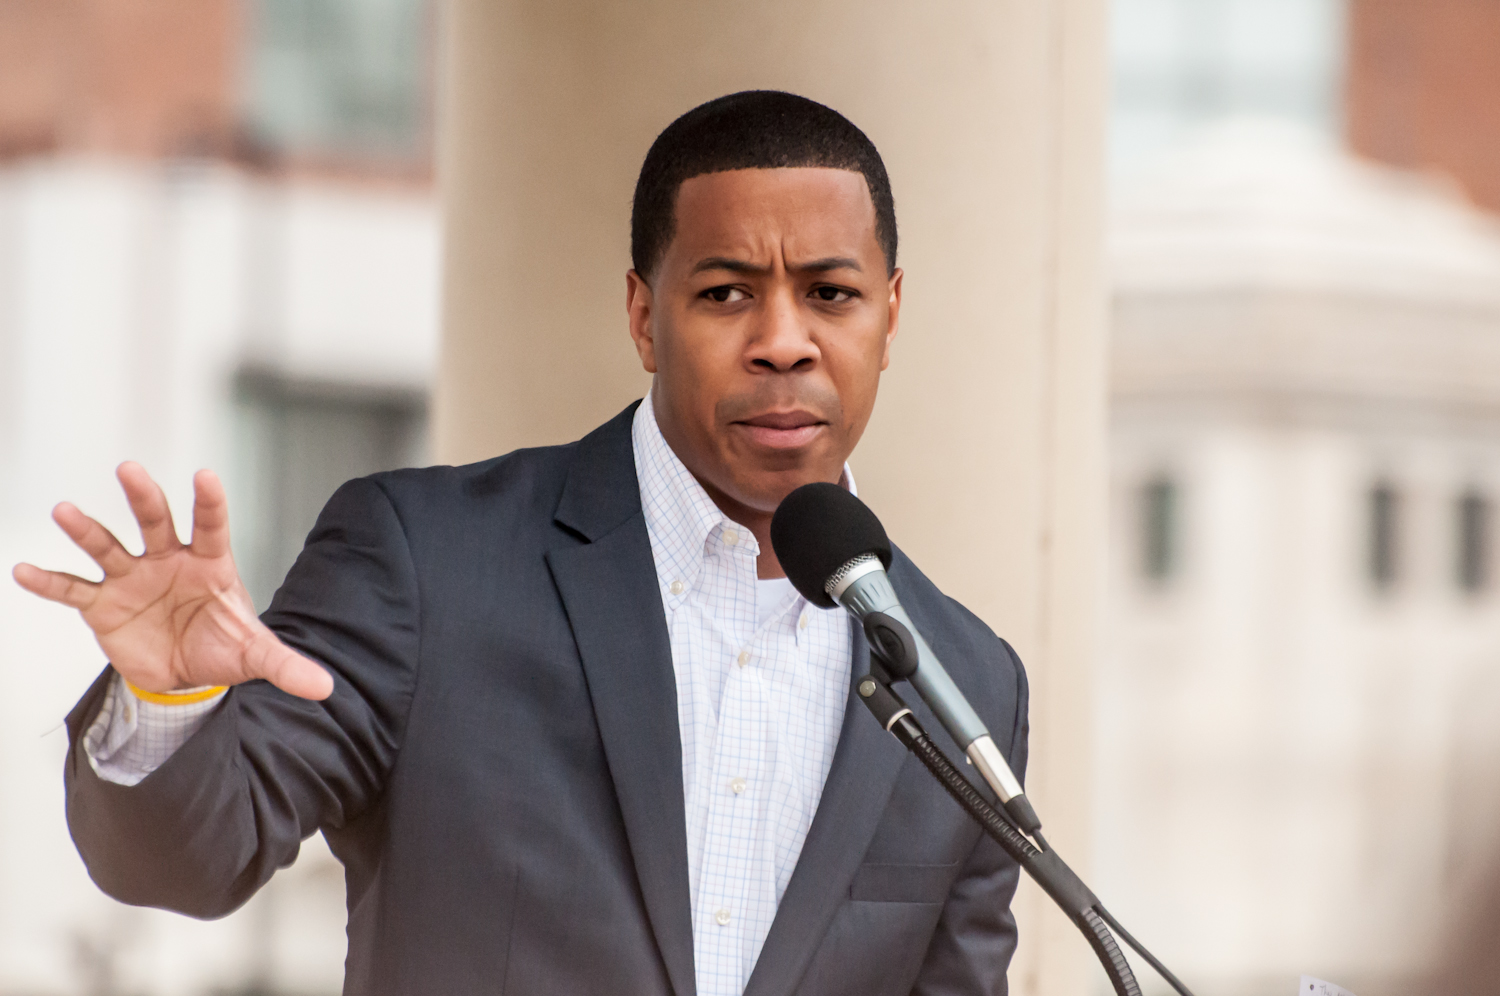 Mahlon Mitchell Posts Strongest Fundraising of All Democrats in Race to Replace Scott Walker